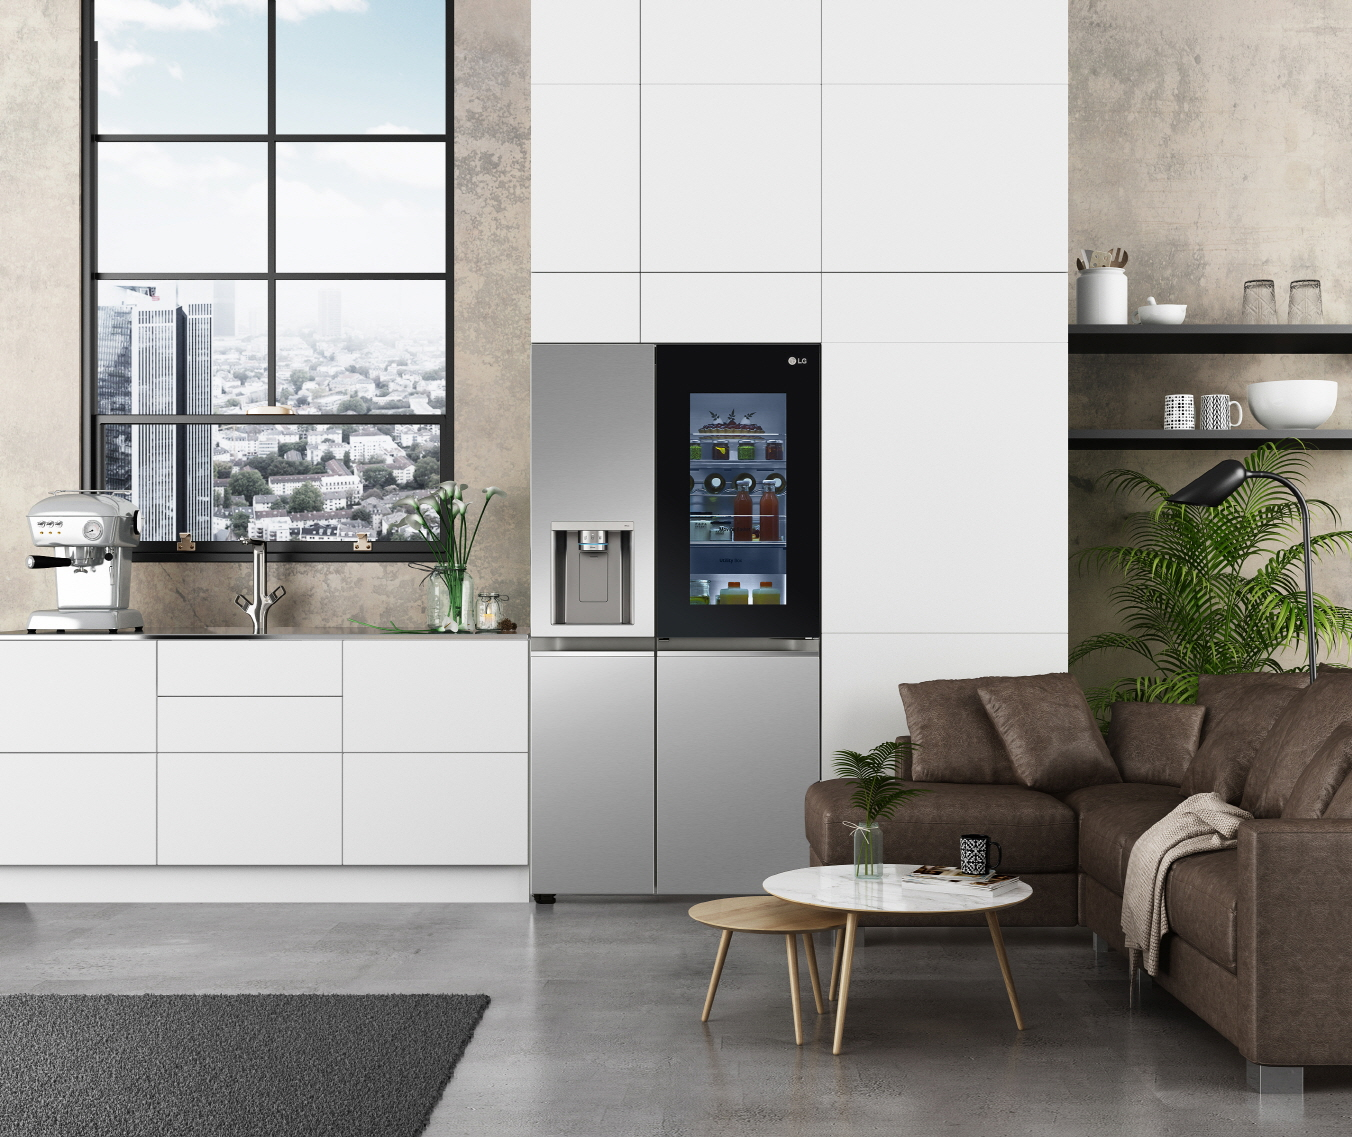 LG InstaView seamlessly fits into a modern kitchen